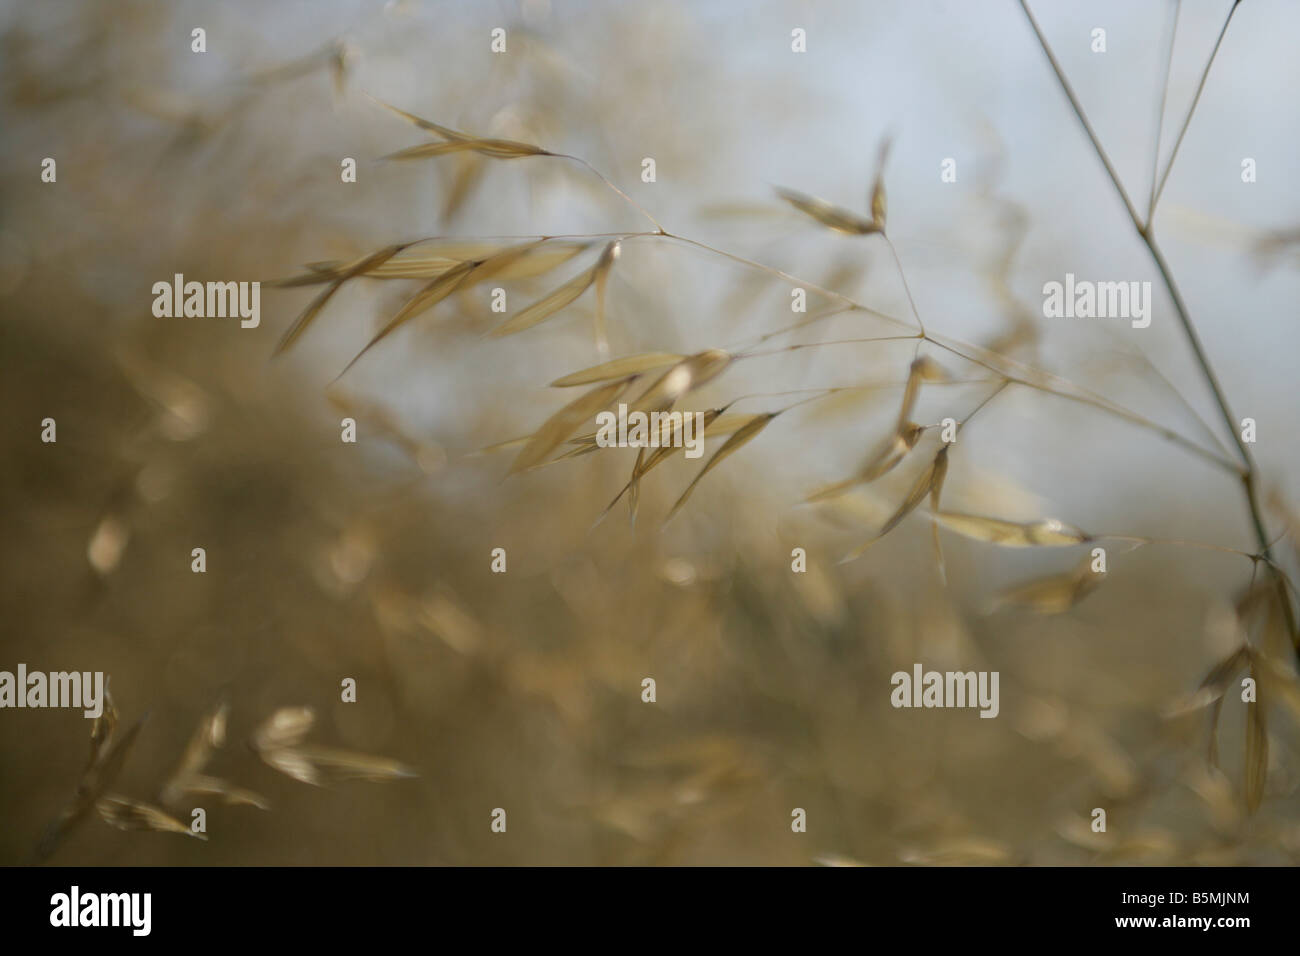 Close up of grass seed pods blowing in the wind in a field - Stock Image